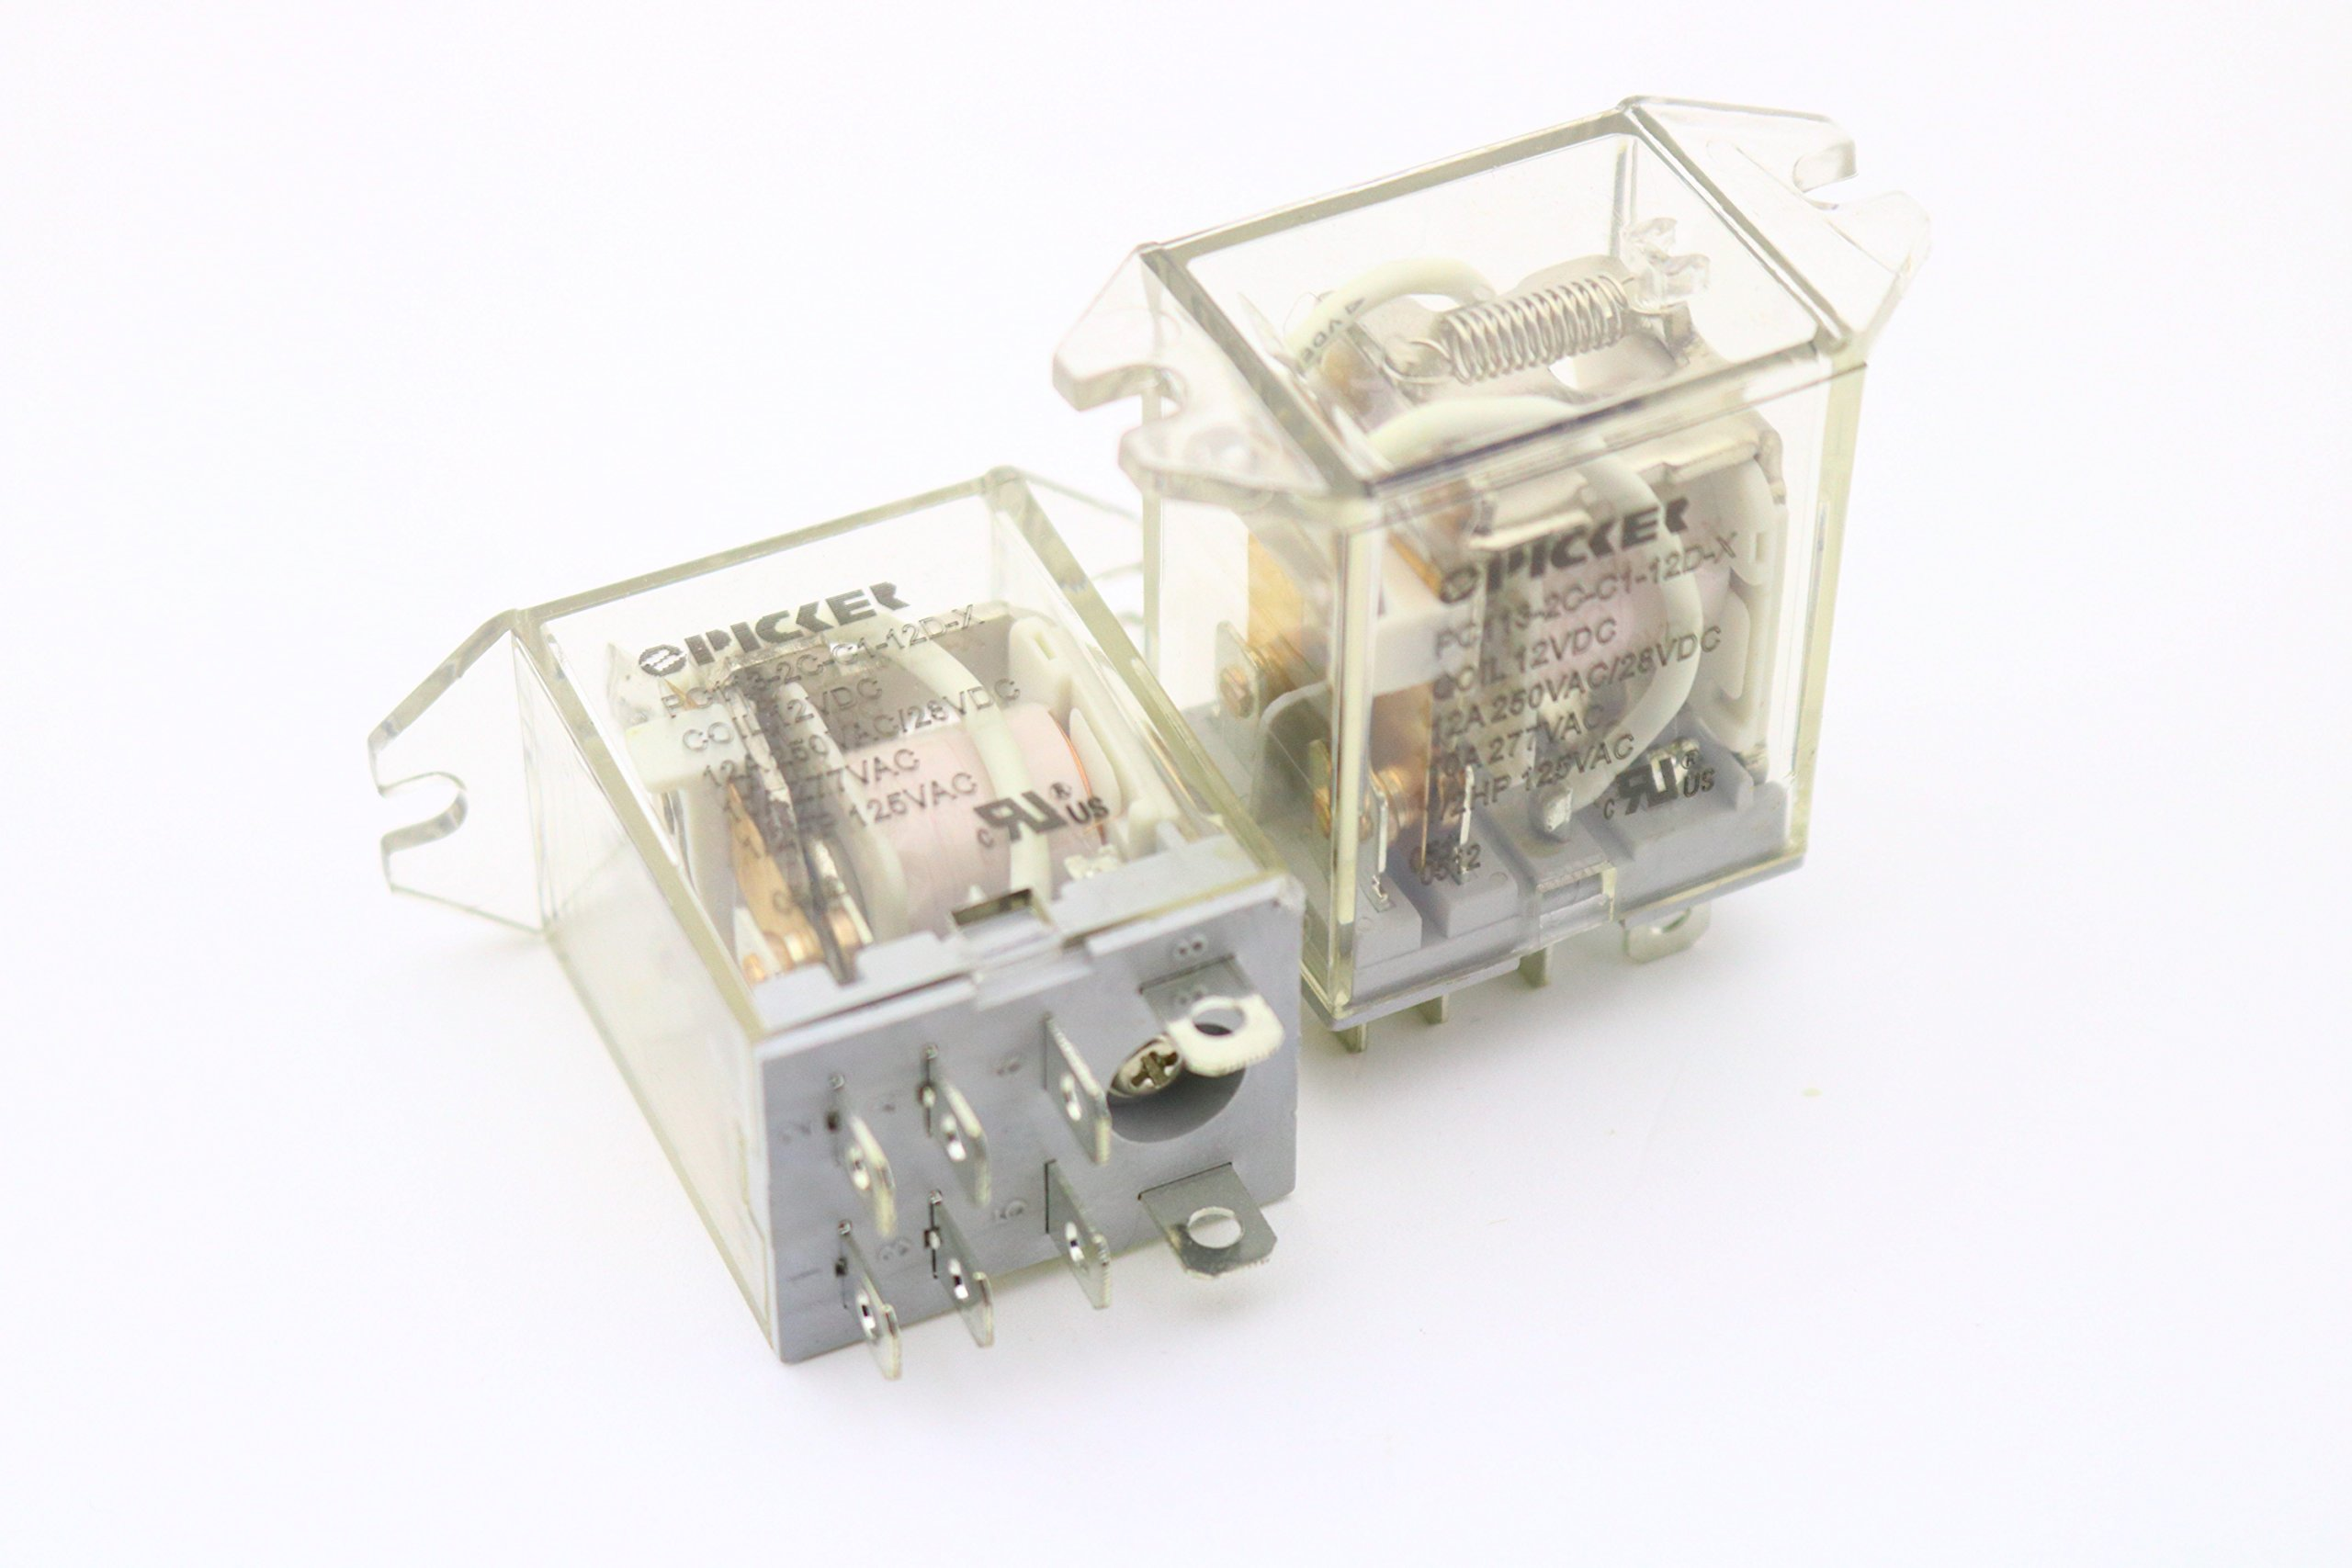 (x2) PC113-2C-C1-12D-X-2 | DPDT 12 VDC Coil 12 Amp 250 VAC UL Rated, Miniature General Purpose Ice Cube Relay w/Clear Plastic Top Flange Mounting Case | Cross: Song Chuan SCL-DPDT-C1-12VDC